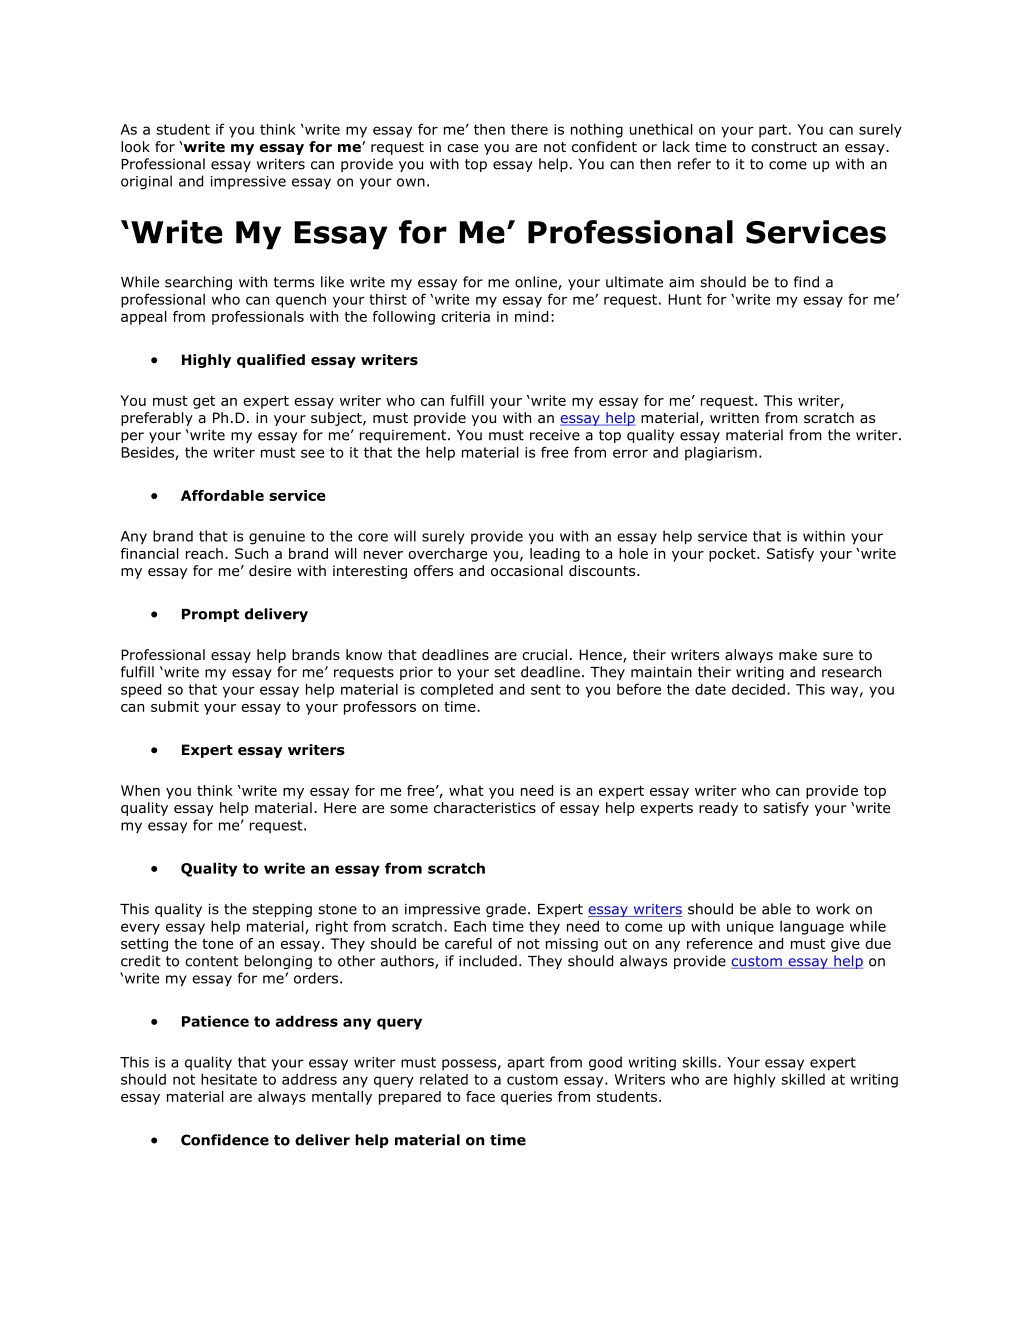 017 Write My Essay For Me Example As Student If You Think Surprising Discount Code Please 4 Me.org